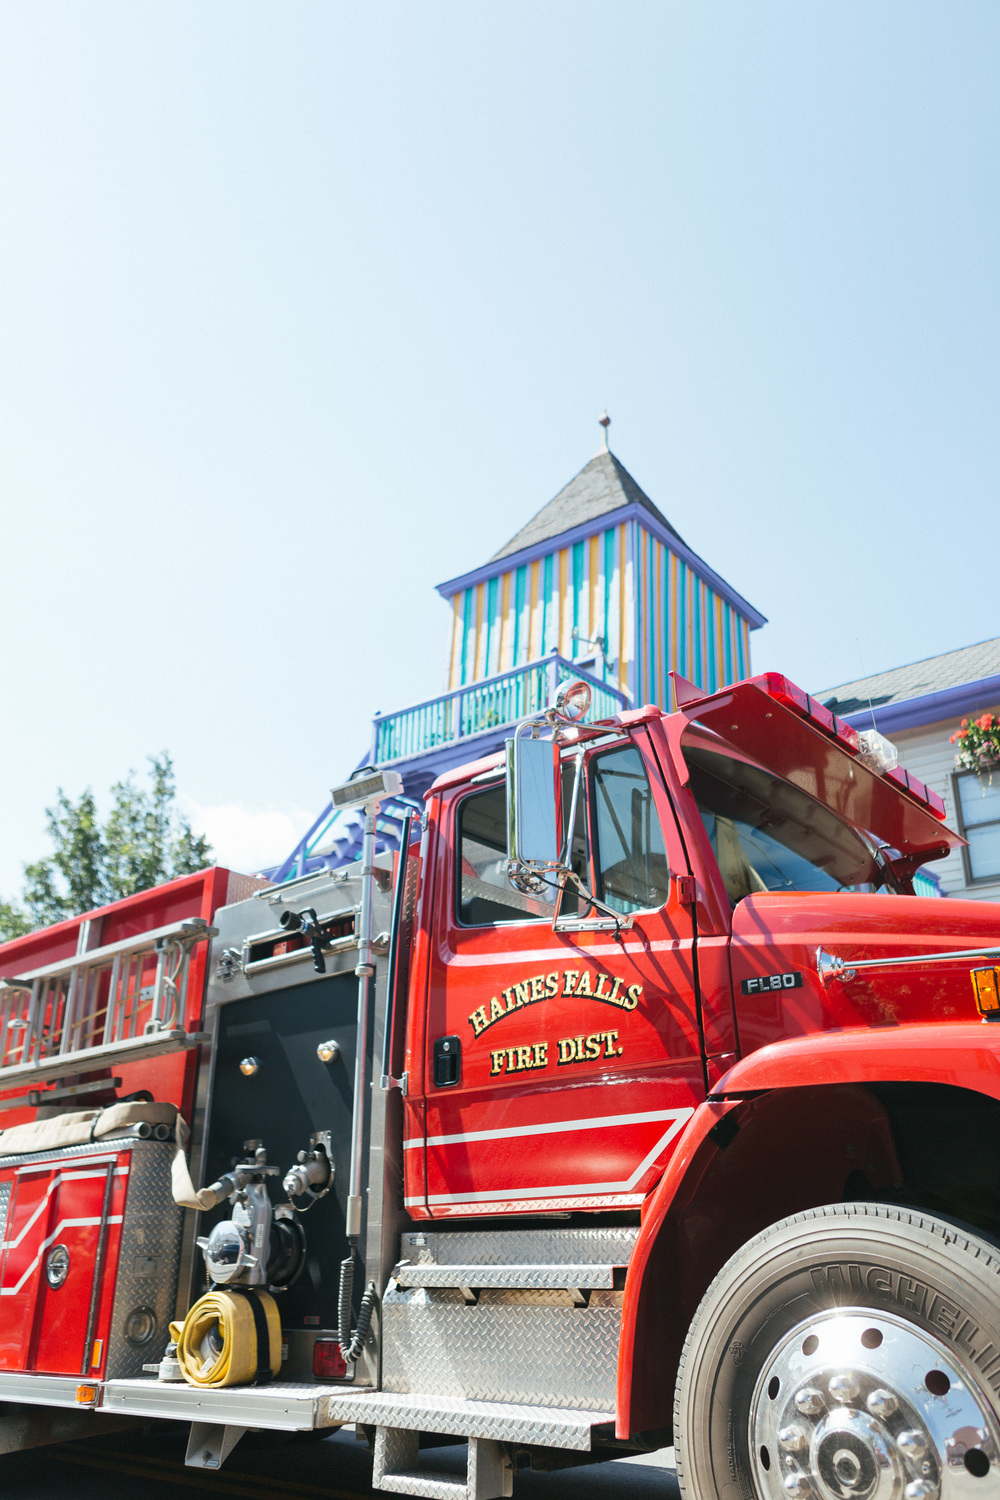 Haines Falls Fire Department Truck passes during the Tannersville Parade.jpg